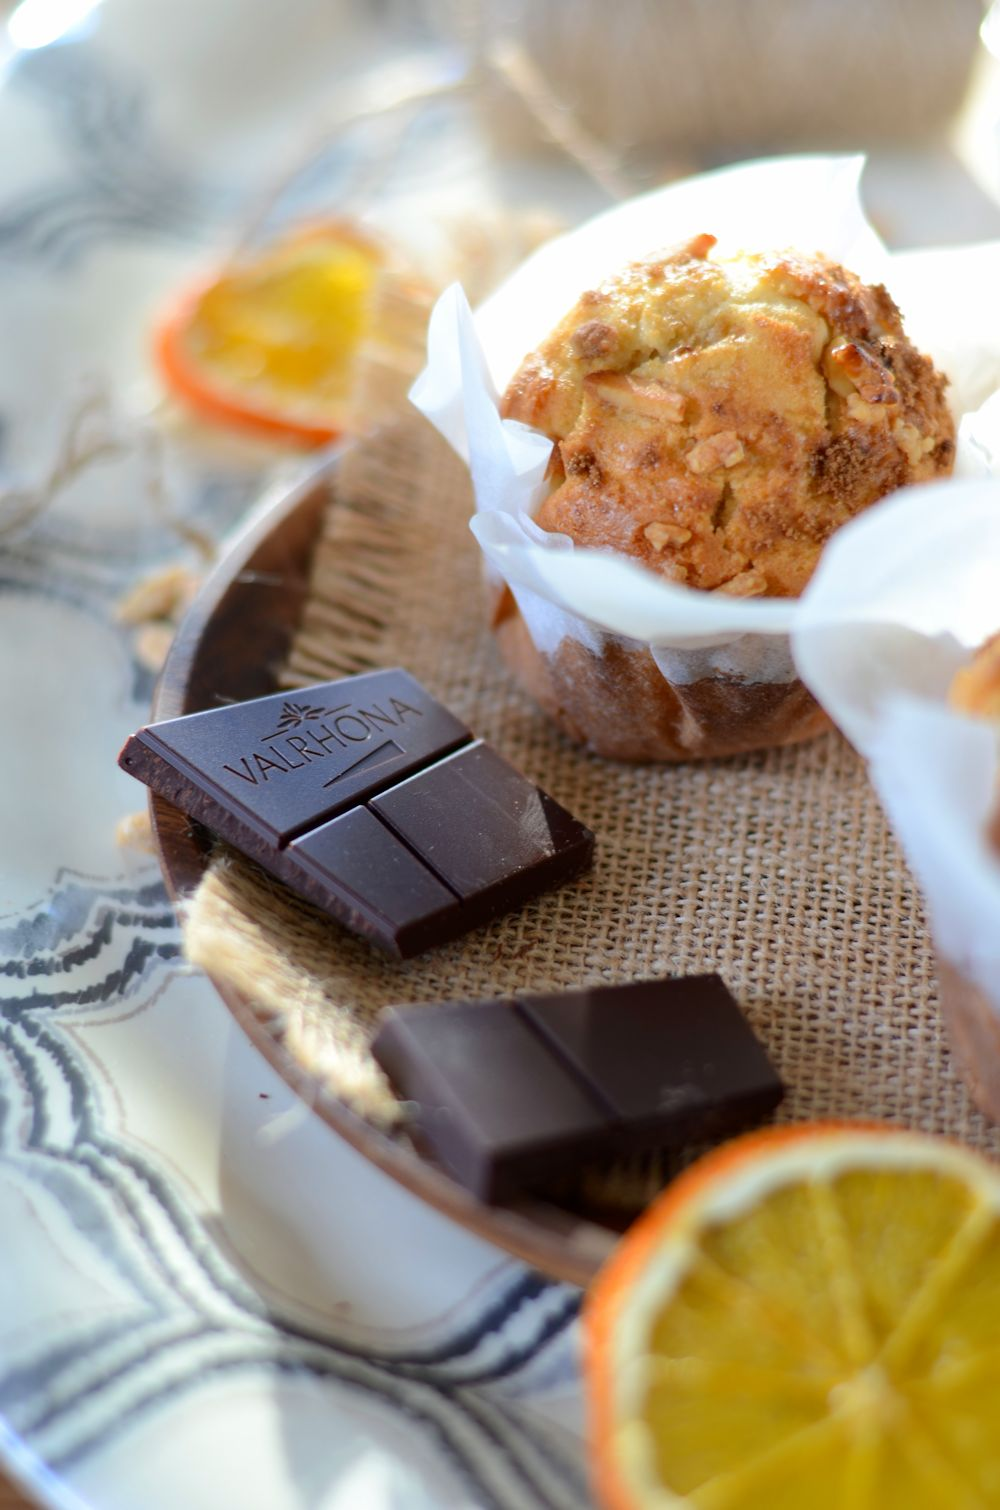 Muffins au chocolat et zestes d'orange